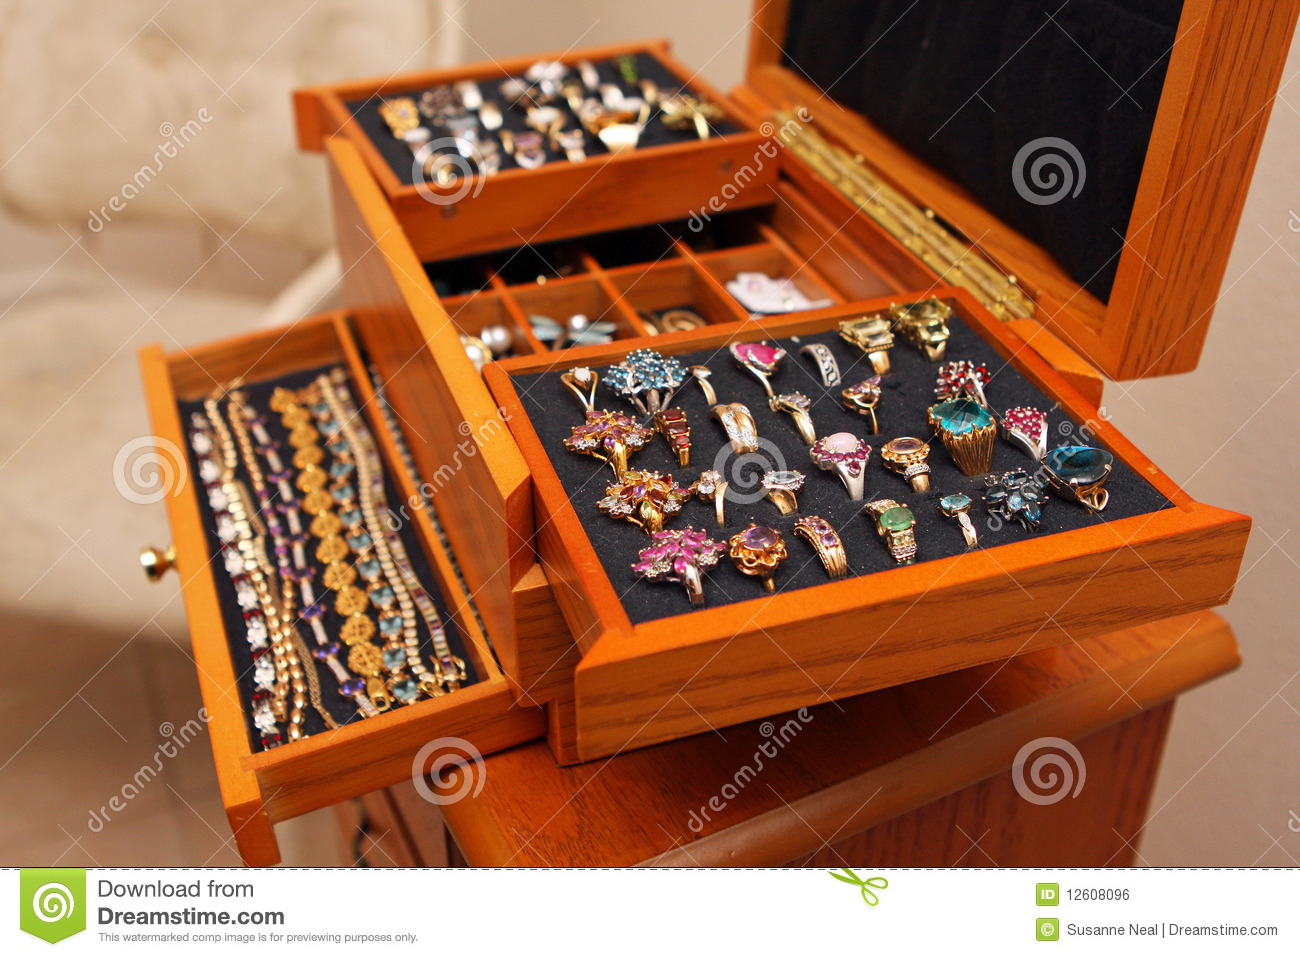 Jewelry Box With Rings And Bracelets Stock Photo - Image ...